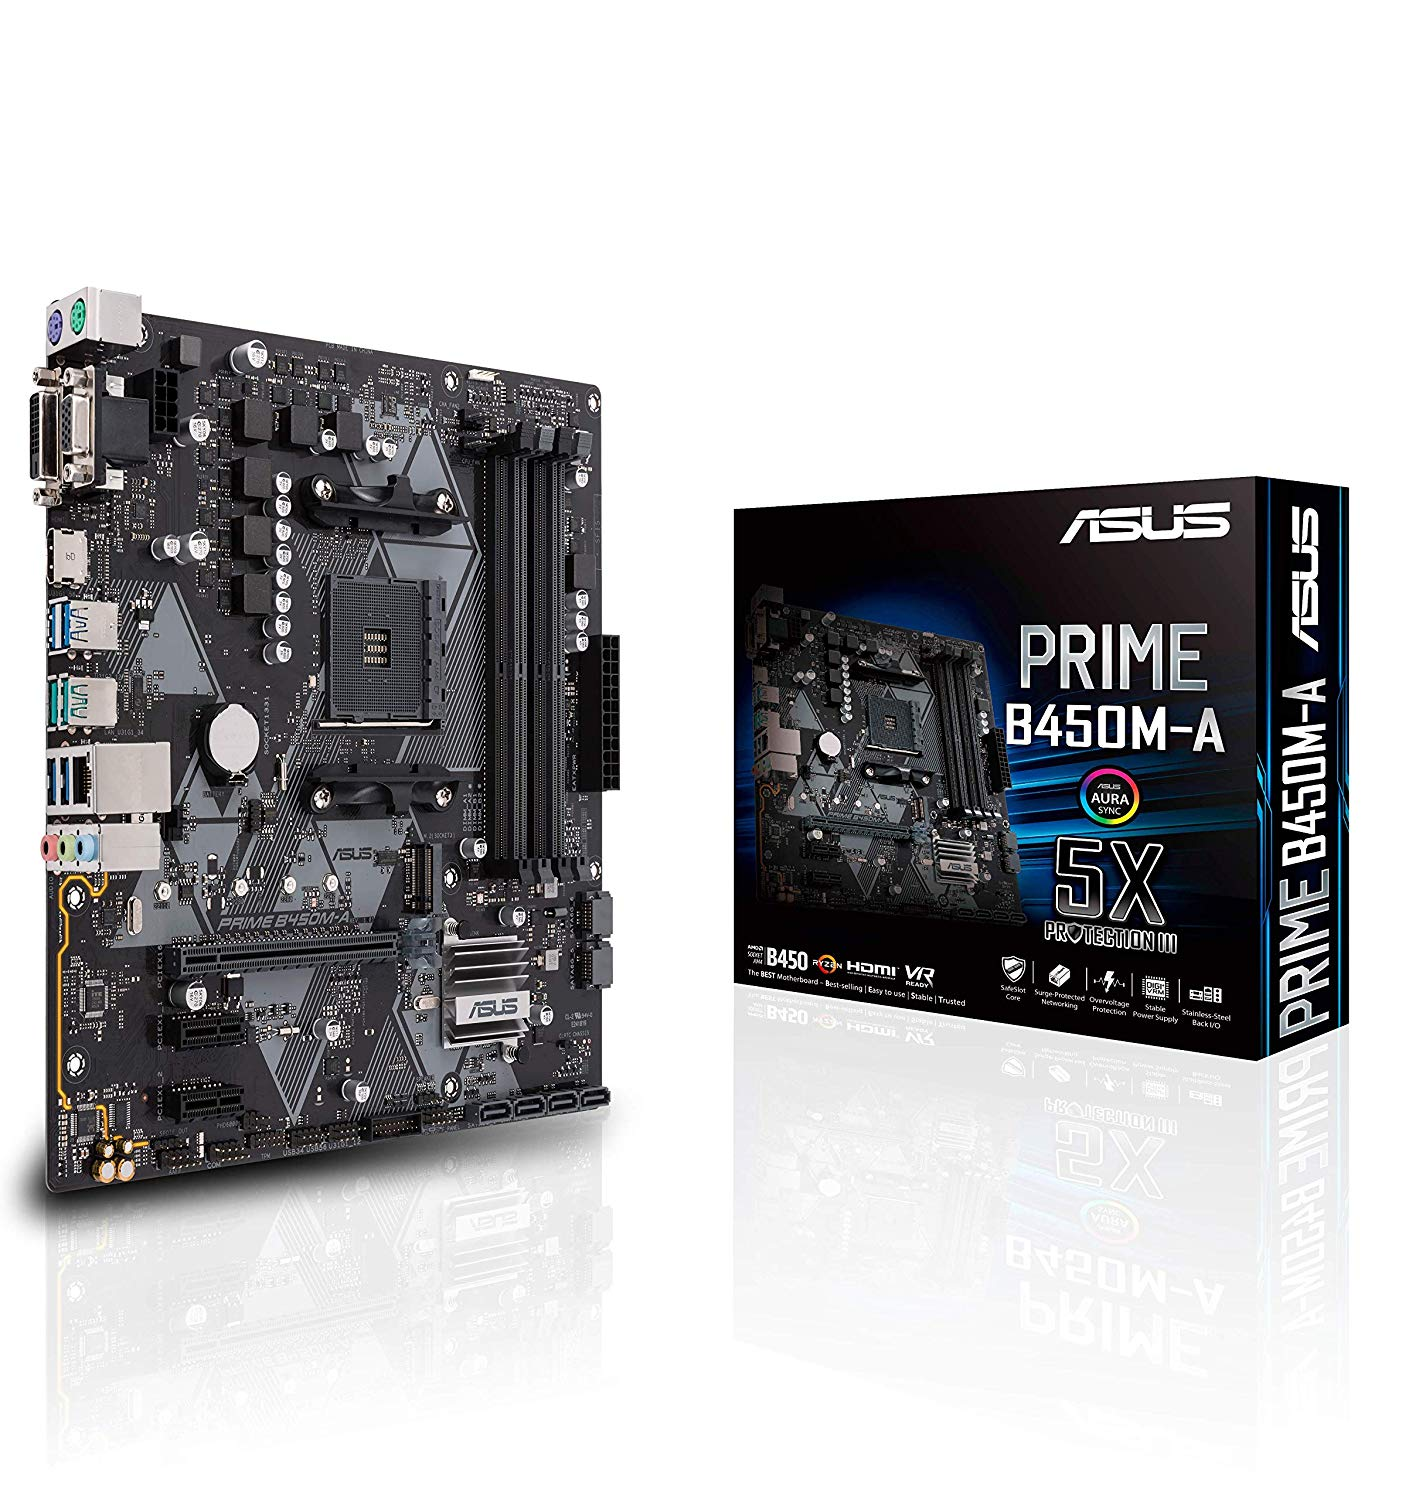 ASUS Prime B450M-A - best motherboard for Ryzen 7 2700x processor